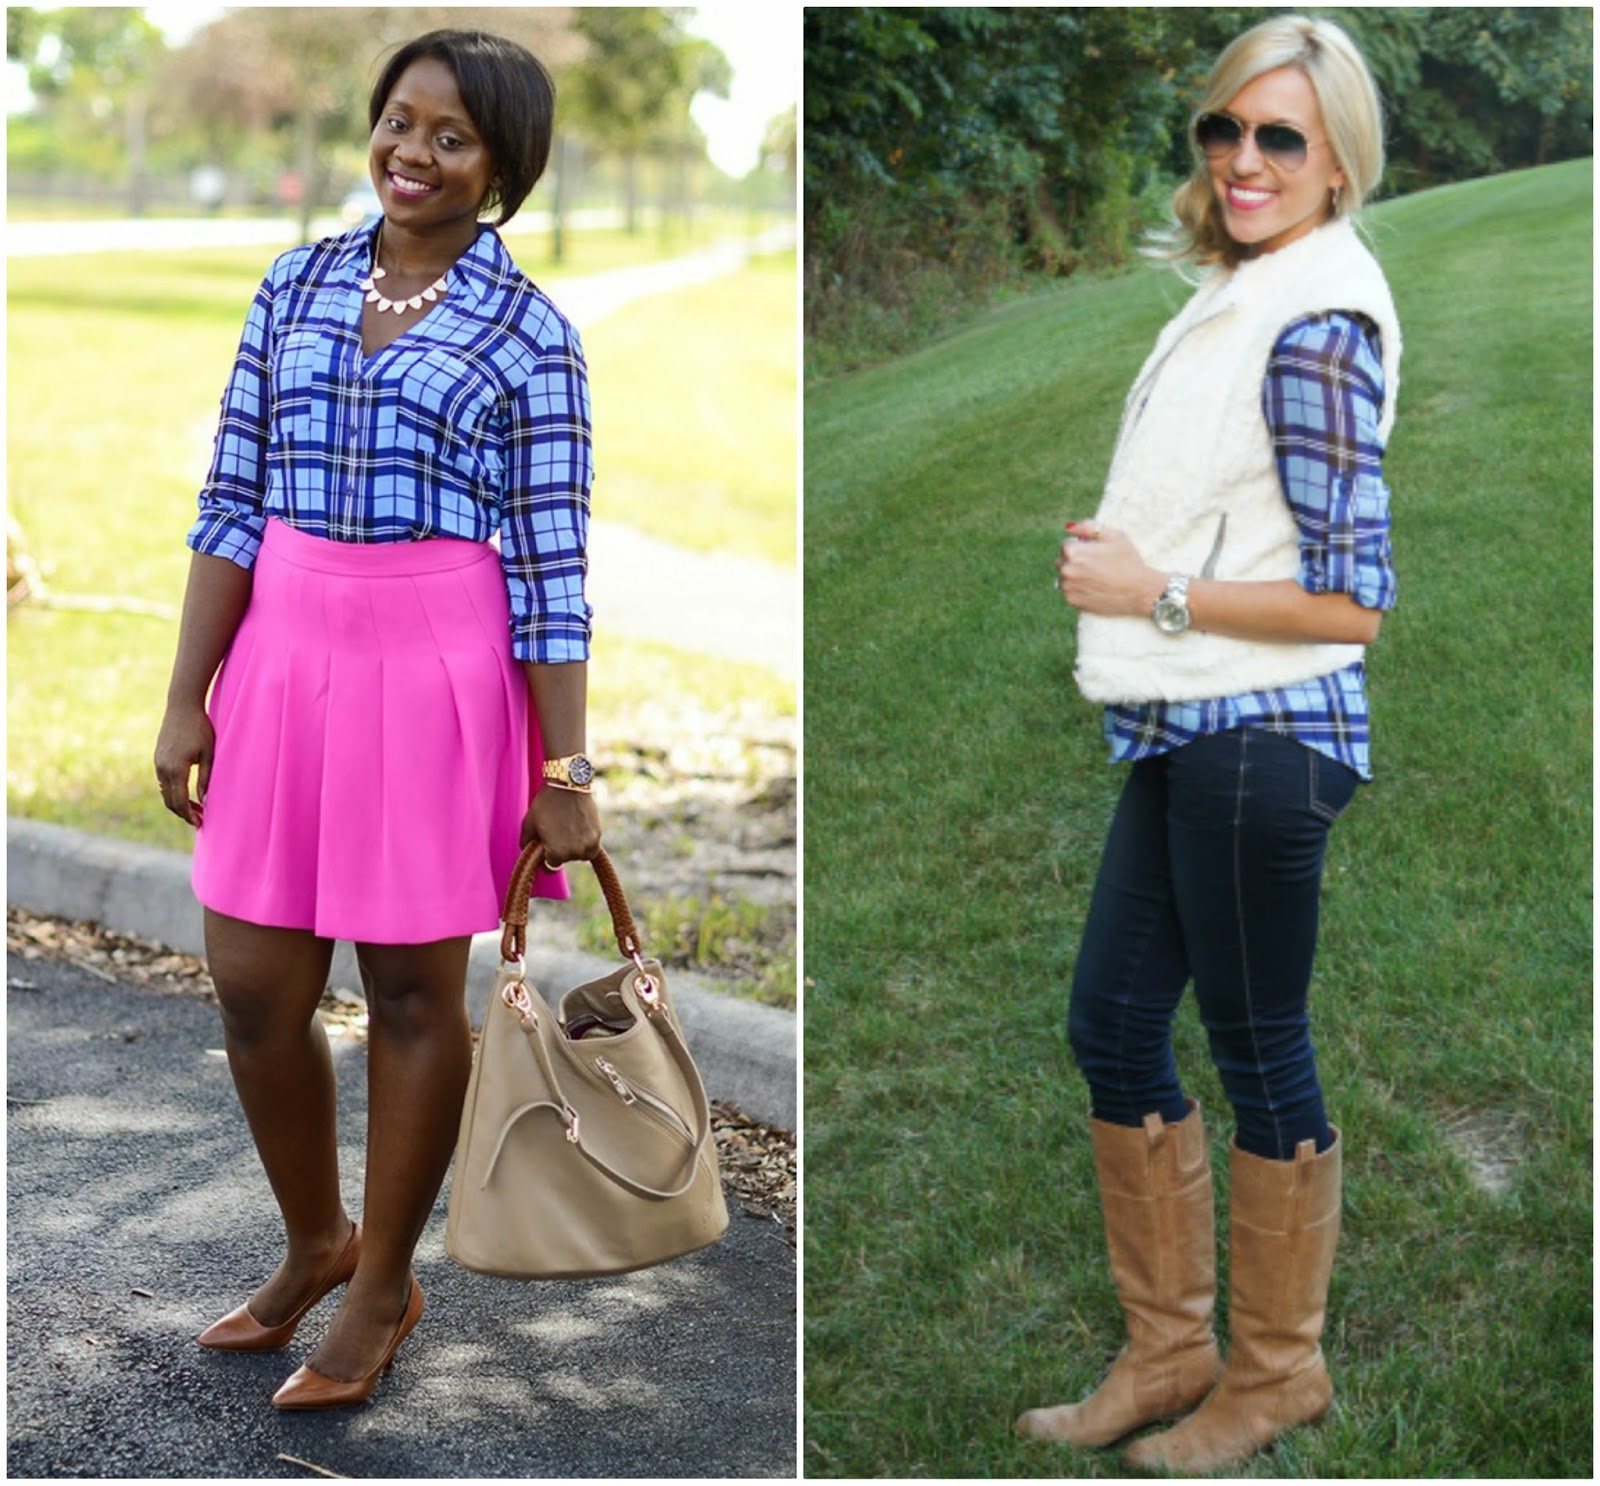 Express Large Plaid Portofino, Blue Plaid Blouse, 2 ways to style